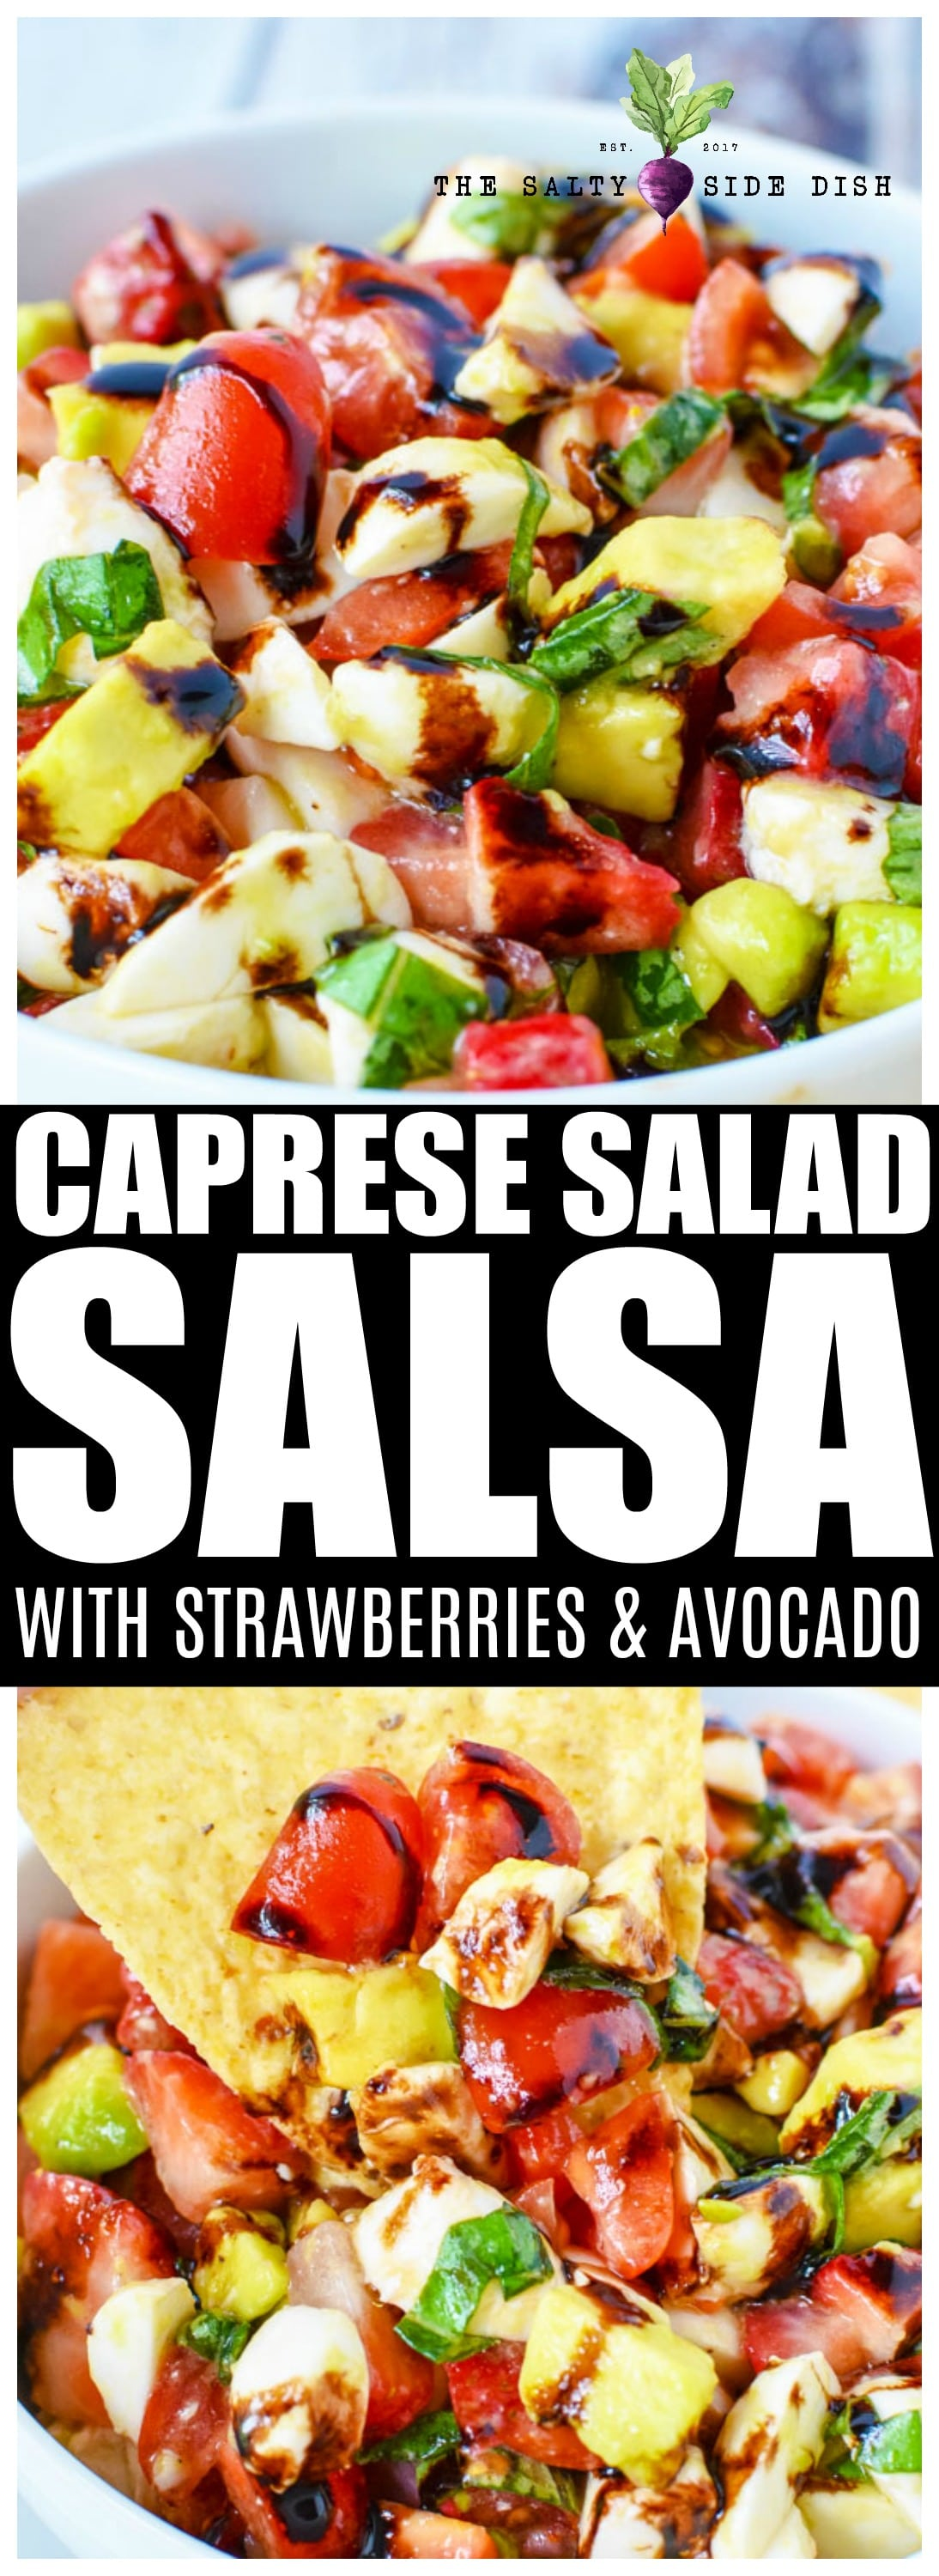 Caprese Salad Salsa | Hearty Appetizer Dip with tomatoes, cheese, avocado and strawberries rolled into balsamic reduction #appetizer #dip #salsa #party #recipe #sidedish #caprese